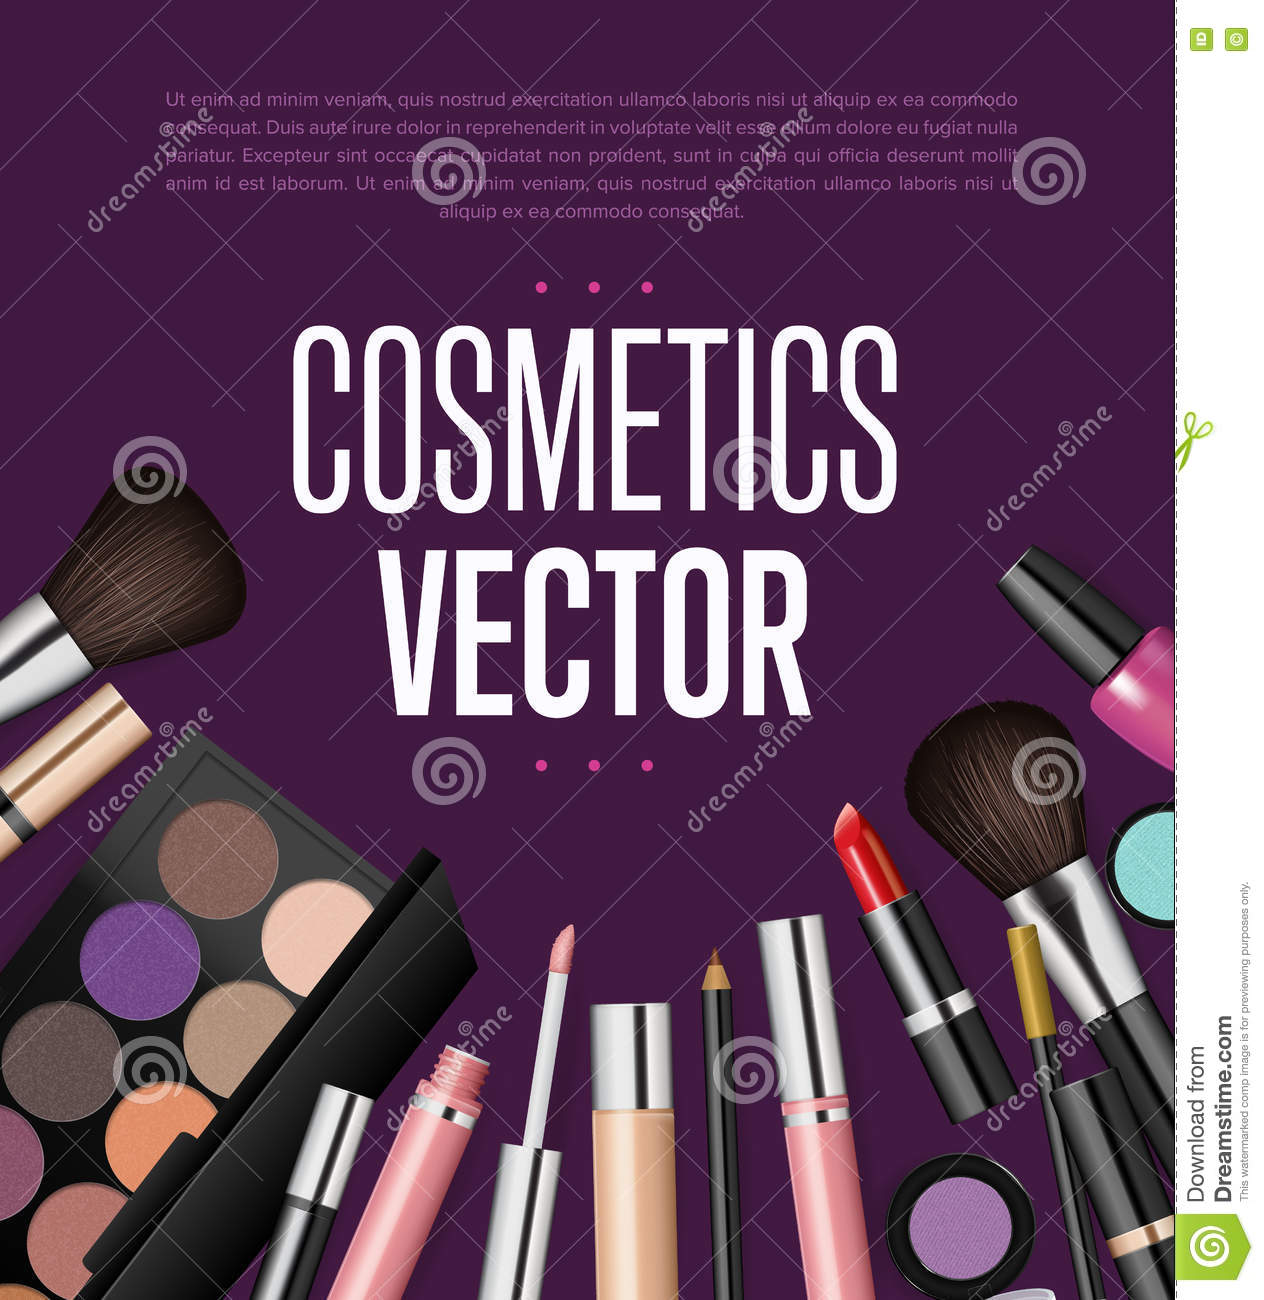 fashion and beauty products essay How do beauty product ads affect consumer self esteem and purchasing date: october 26, 2010 source: university of chicago press journals summary: ads featuring beauty products actually lower female consumers' self-esteem, a new study has found.